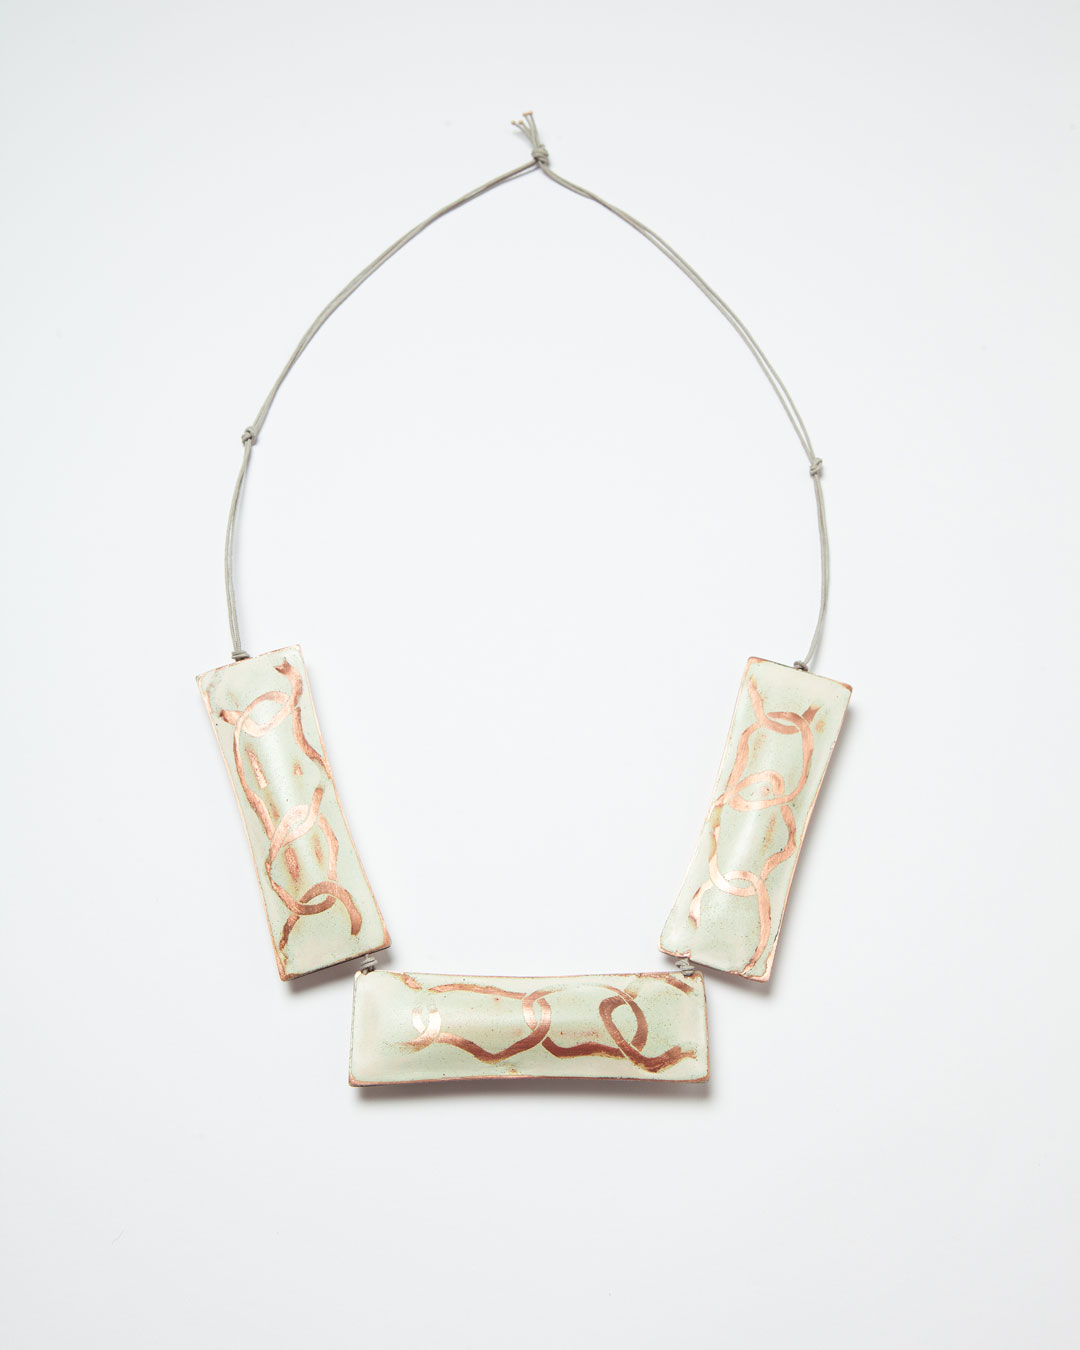 Nicole Beck, Linked, 2017, necklace;; copper, enamel, silver, string, 105 x 35 x 15 mm, €1460